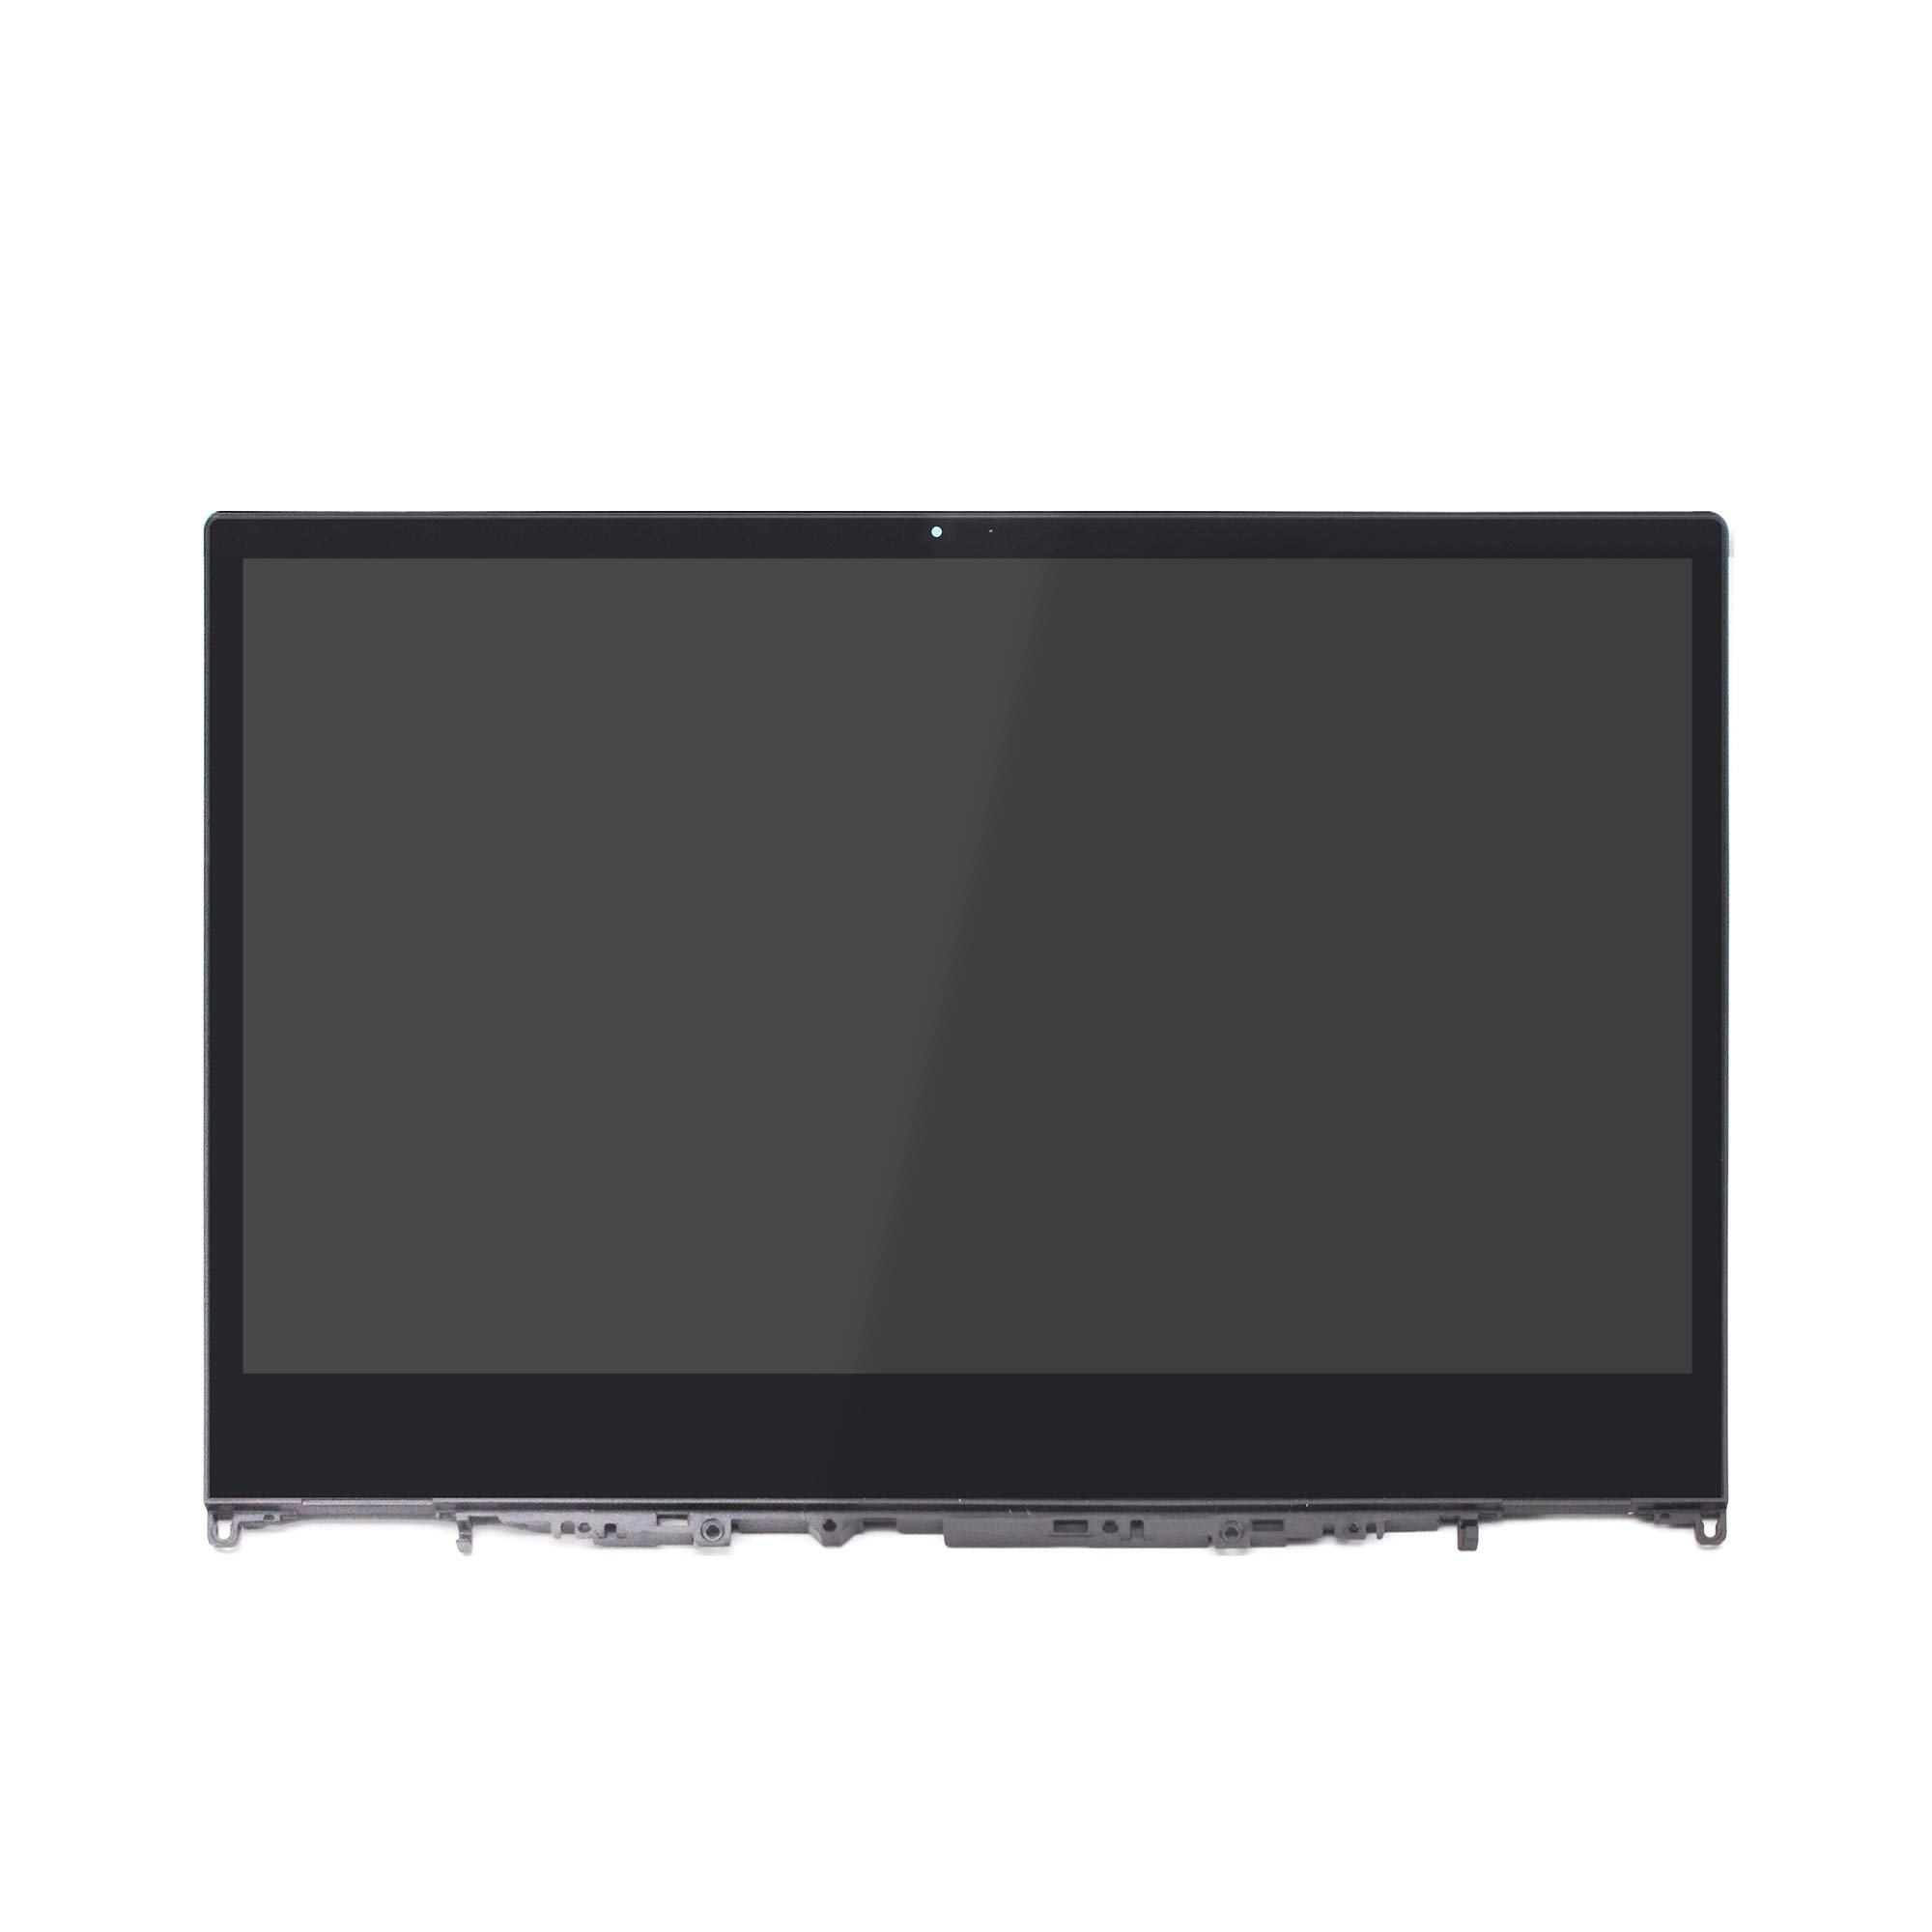 FTDLCD® 14 Pulgadas FHD LED LCD Touch Screen Digitizer IPS Display Assembly con Marco para Lenovo Yoga 530-14ARR 81H9003VGE 81H90049GE 81H9005FGE 81H9006NGE: Amazon.es: Informática